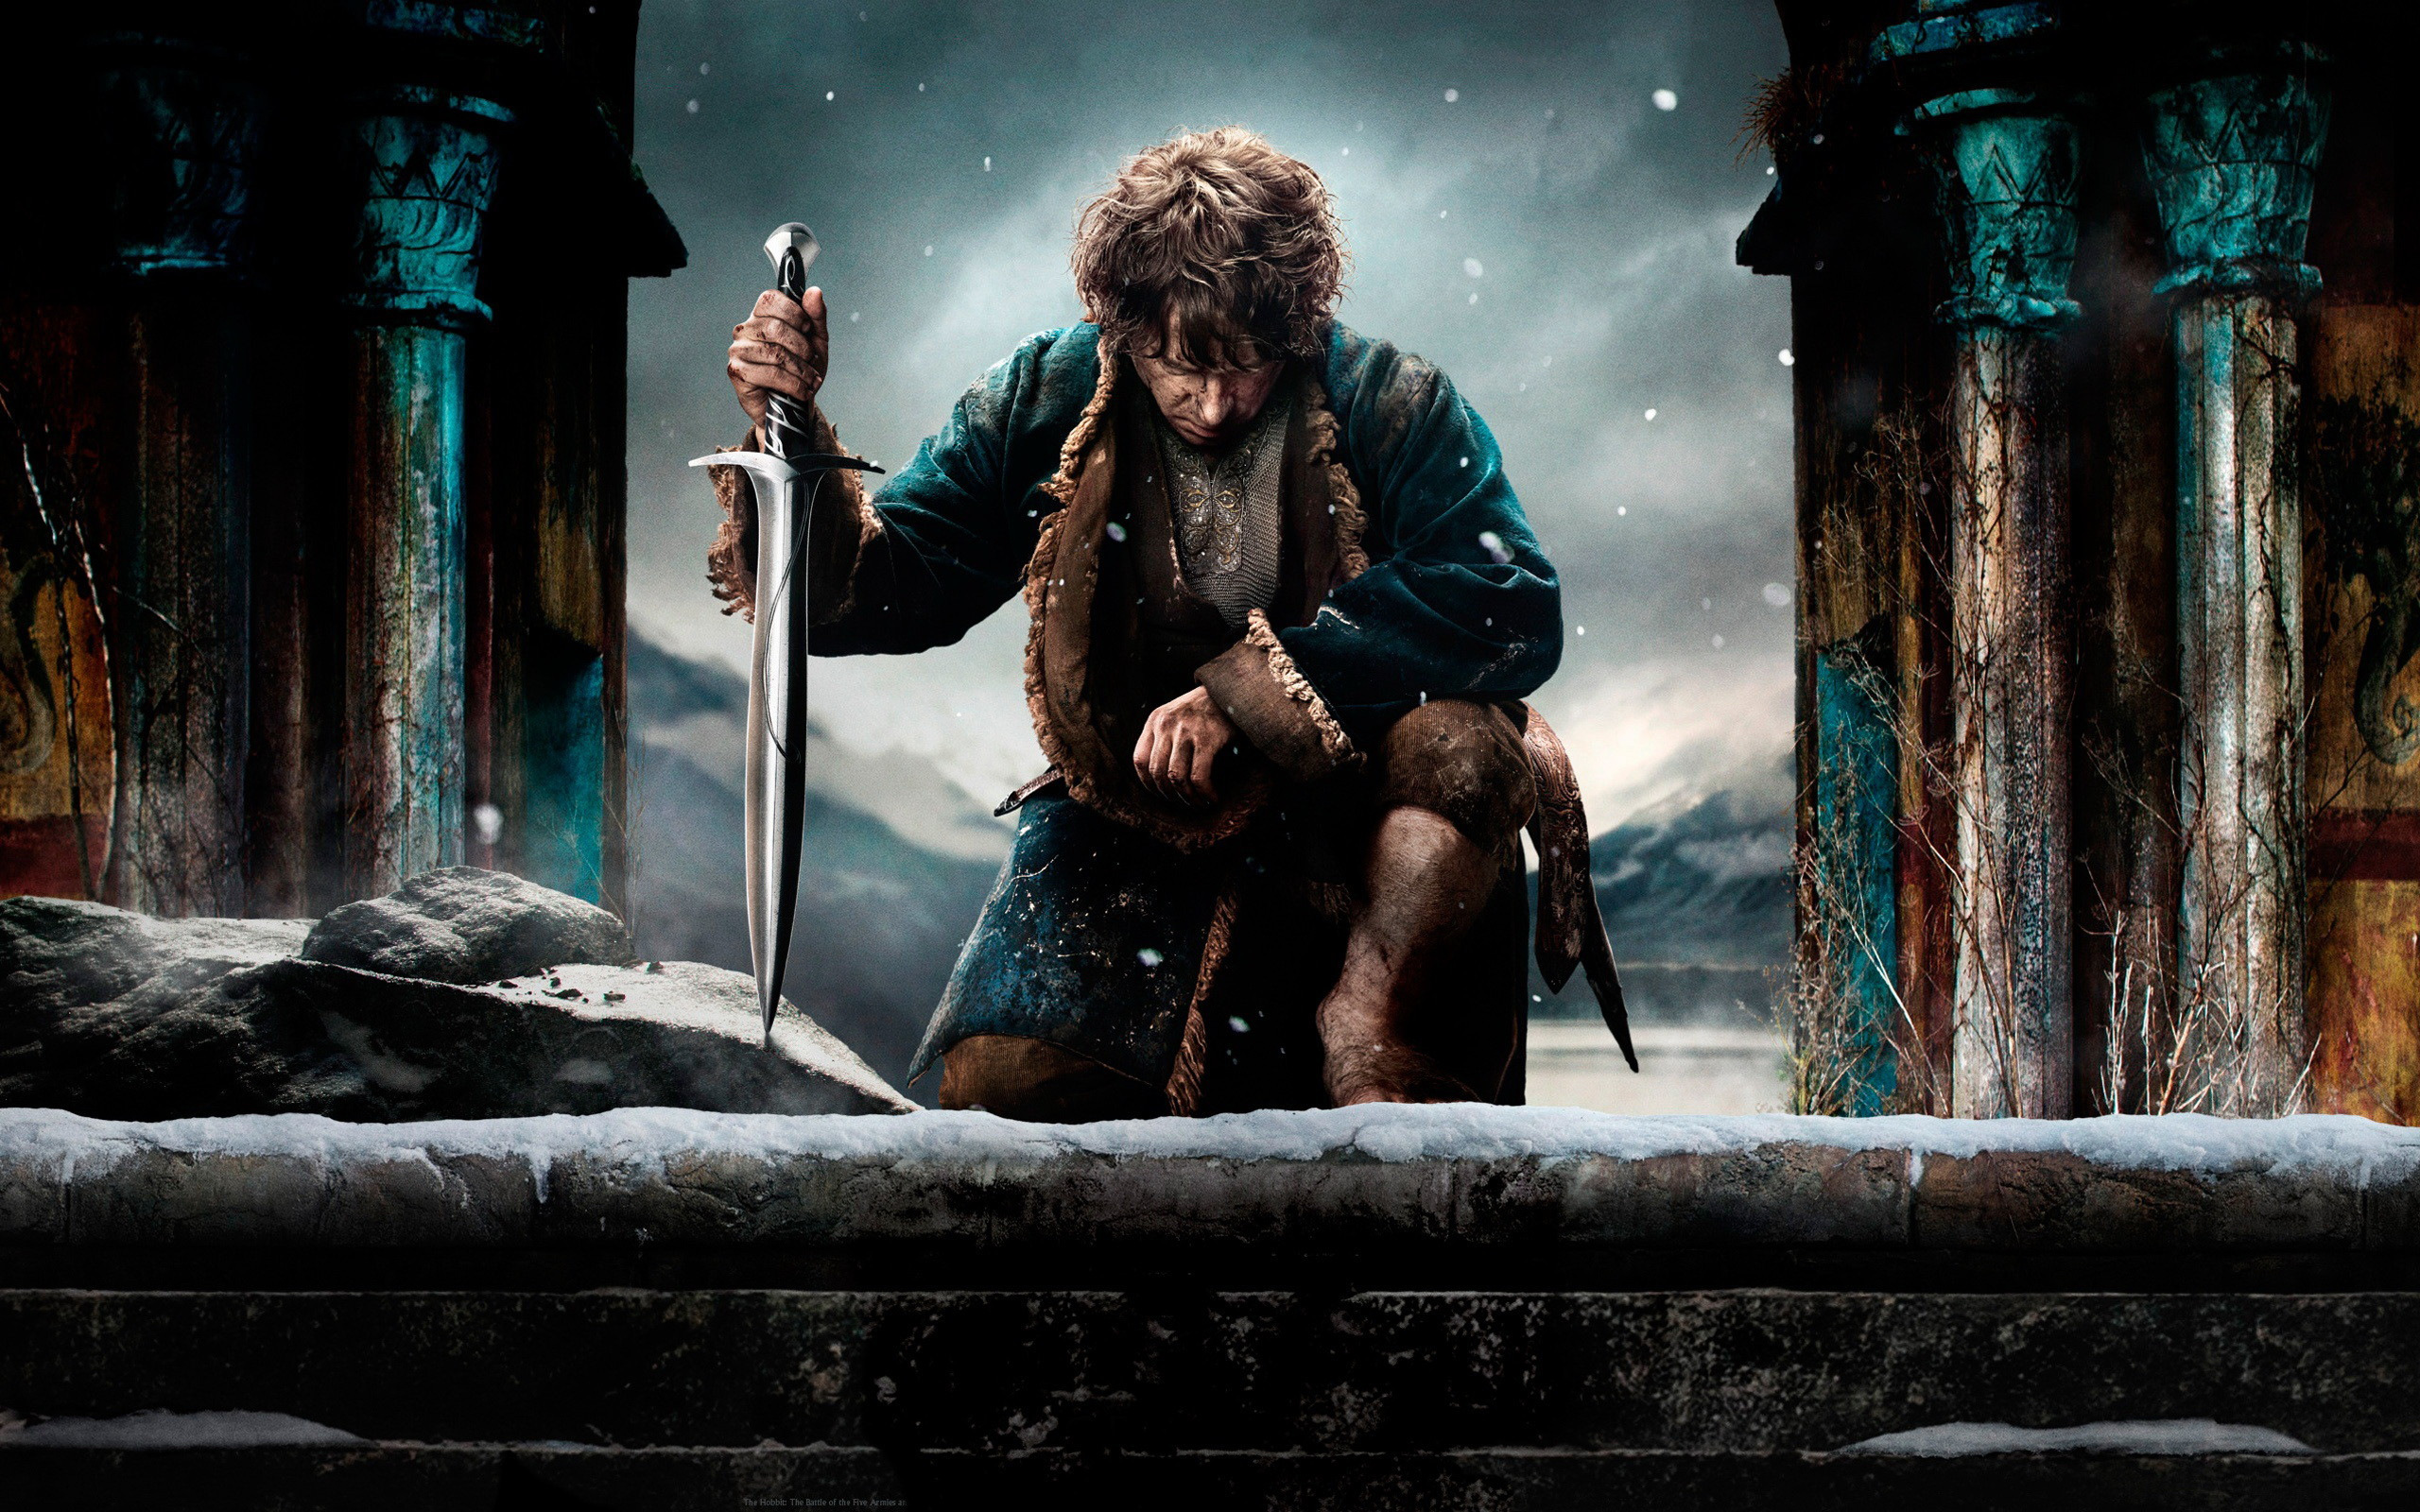 Free download the hobbit 3: the battle of the five armies full hd.